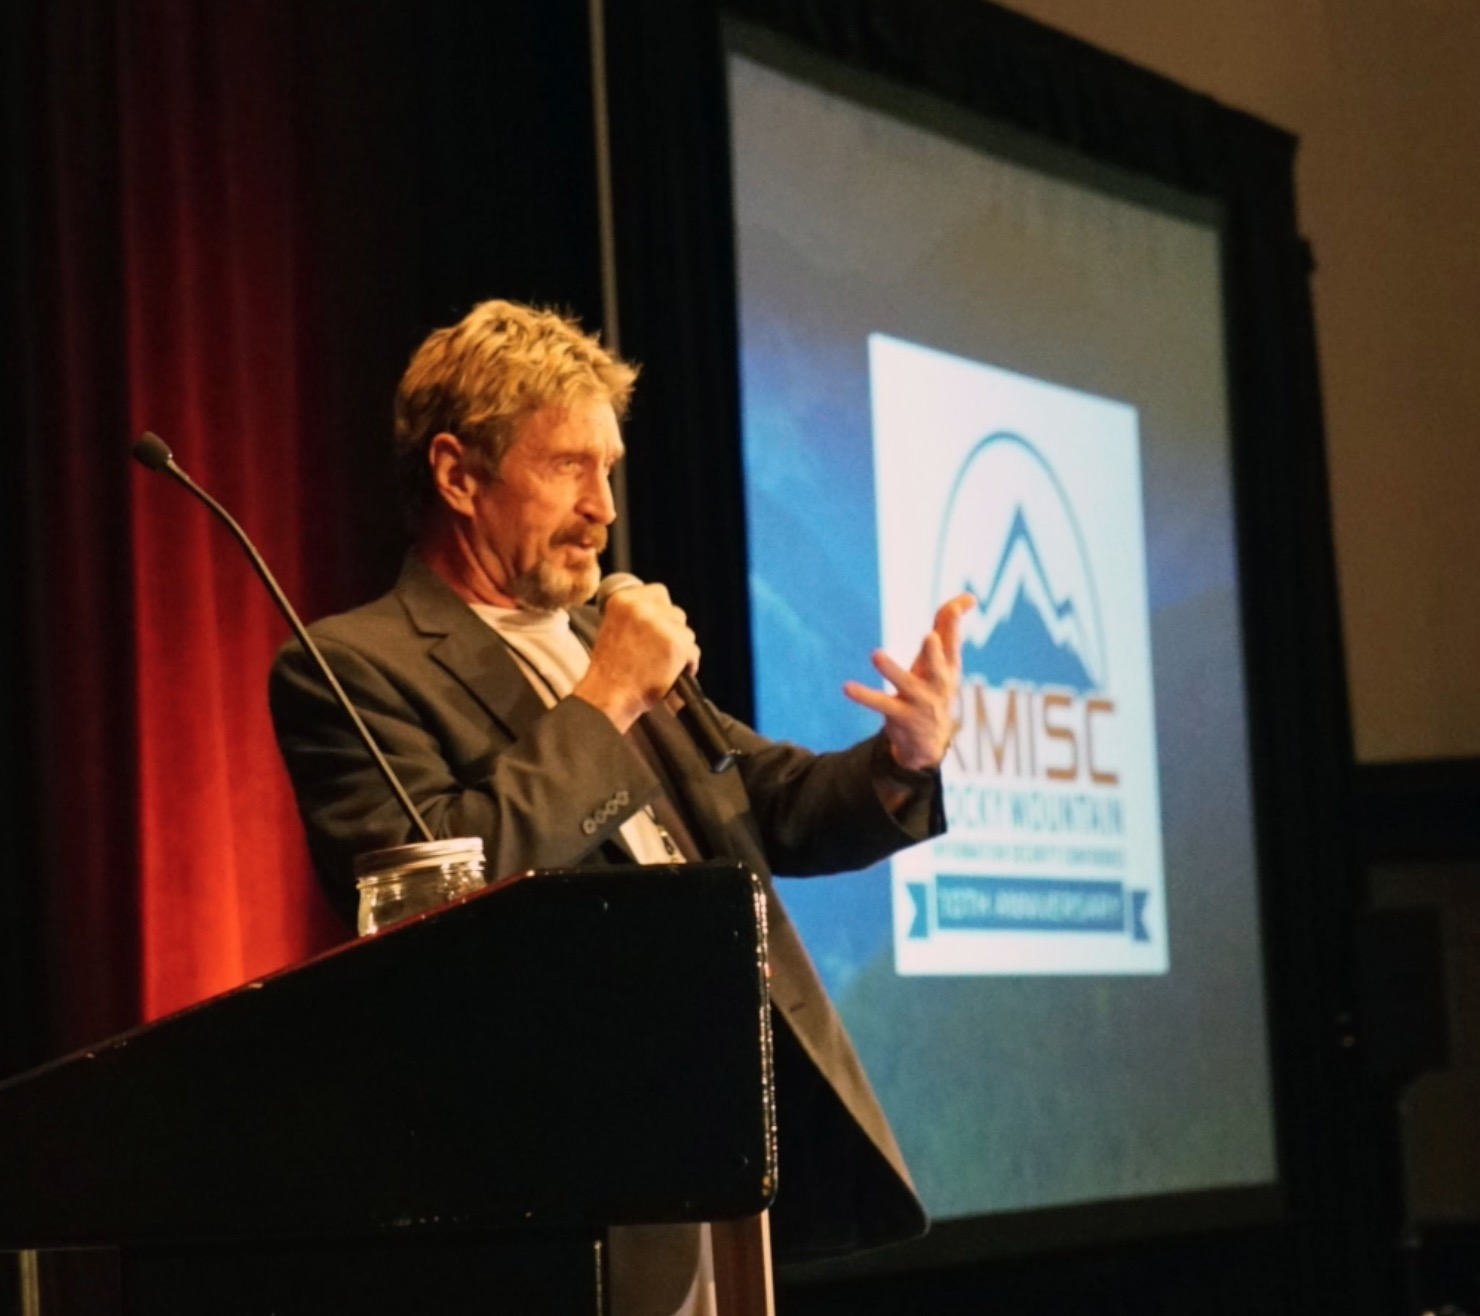 John McAfee: Security danger from phones